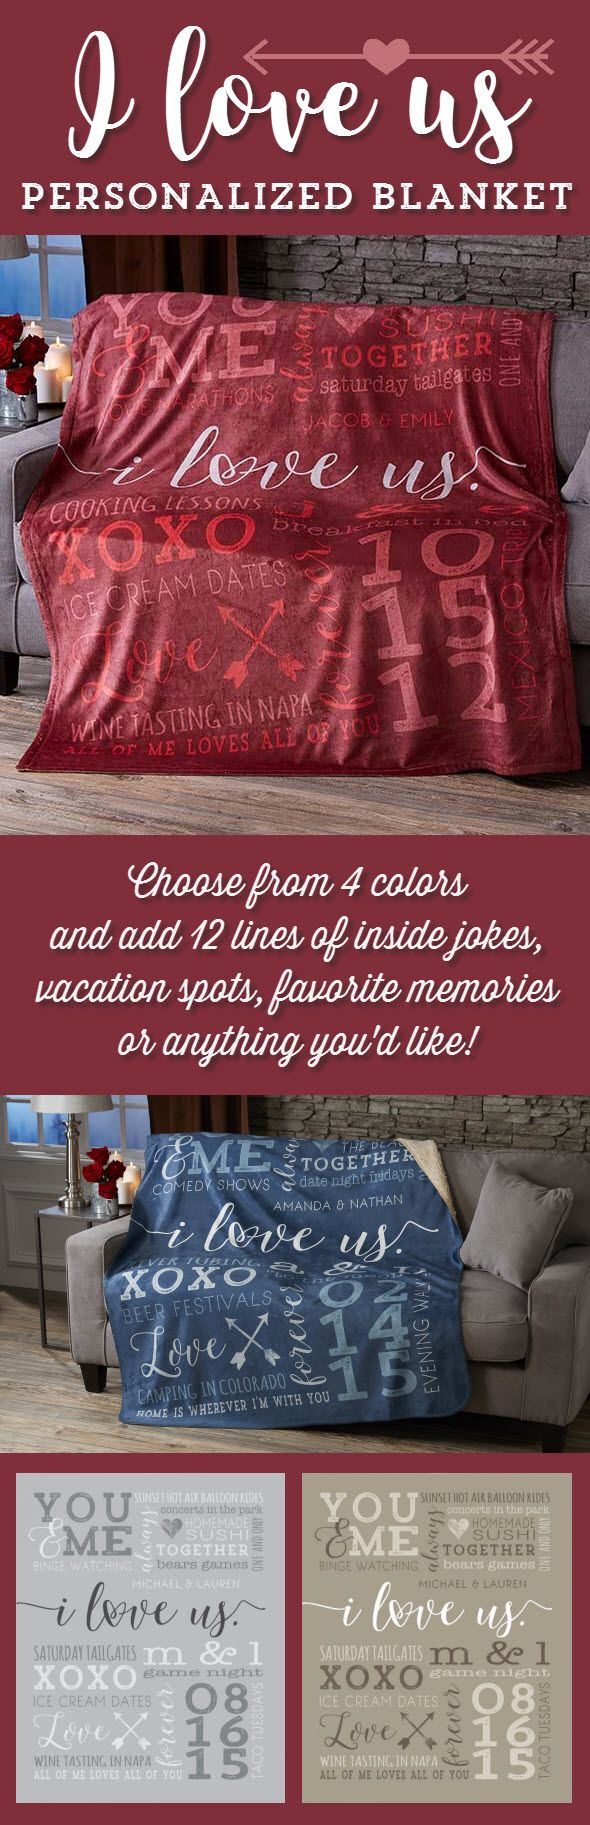 """LOVE this """"I Love Us"""" Personalized Blanket! You can choose from 4 colors and add any 2 names, special date and 12 lines of personalization - you can add inside jokes, romantic memories, concerts, vacation spots or anything you want! It's the perfect anniversary gift idea!"""